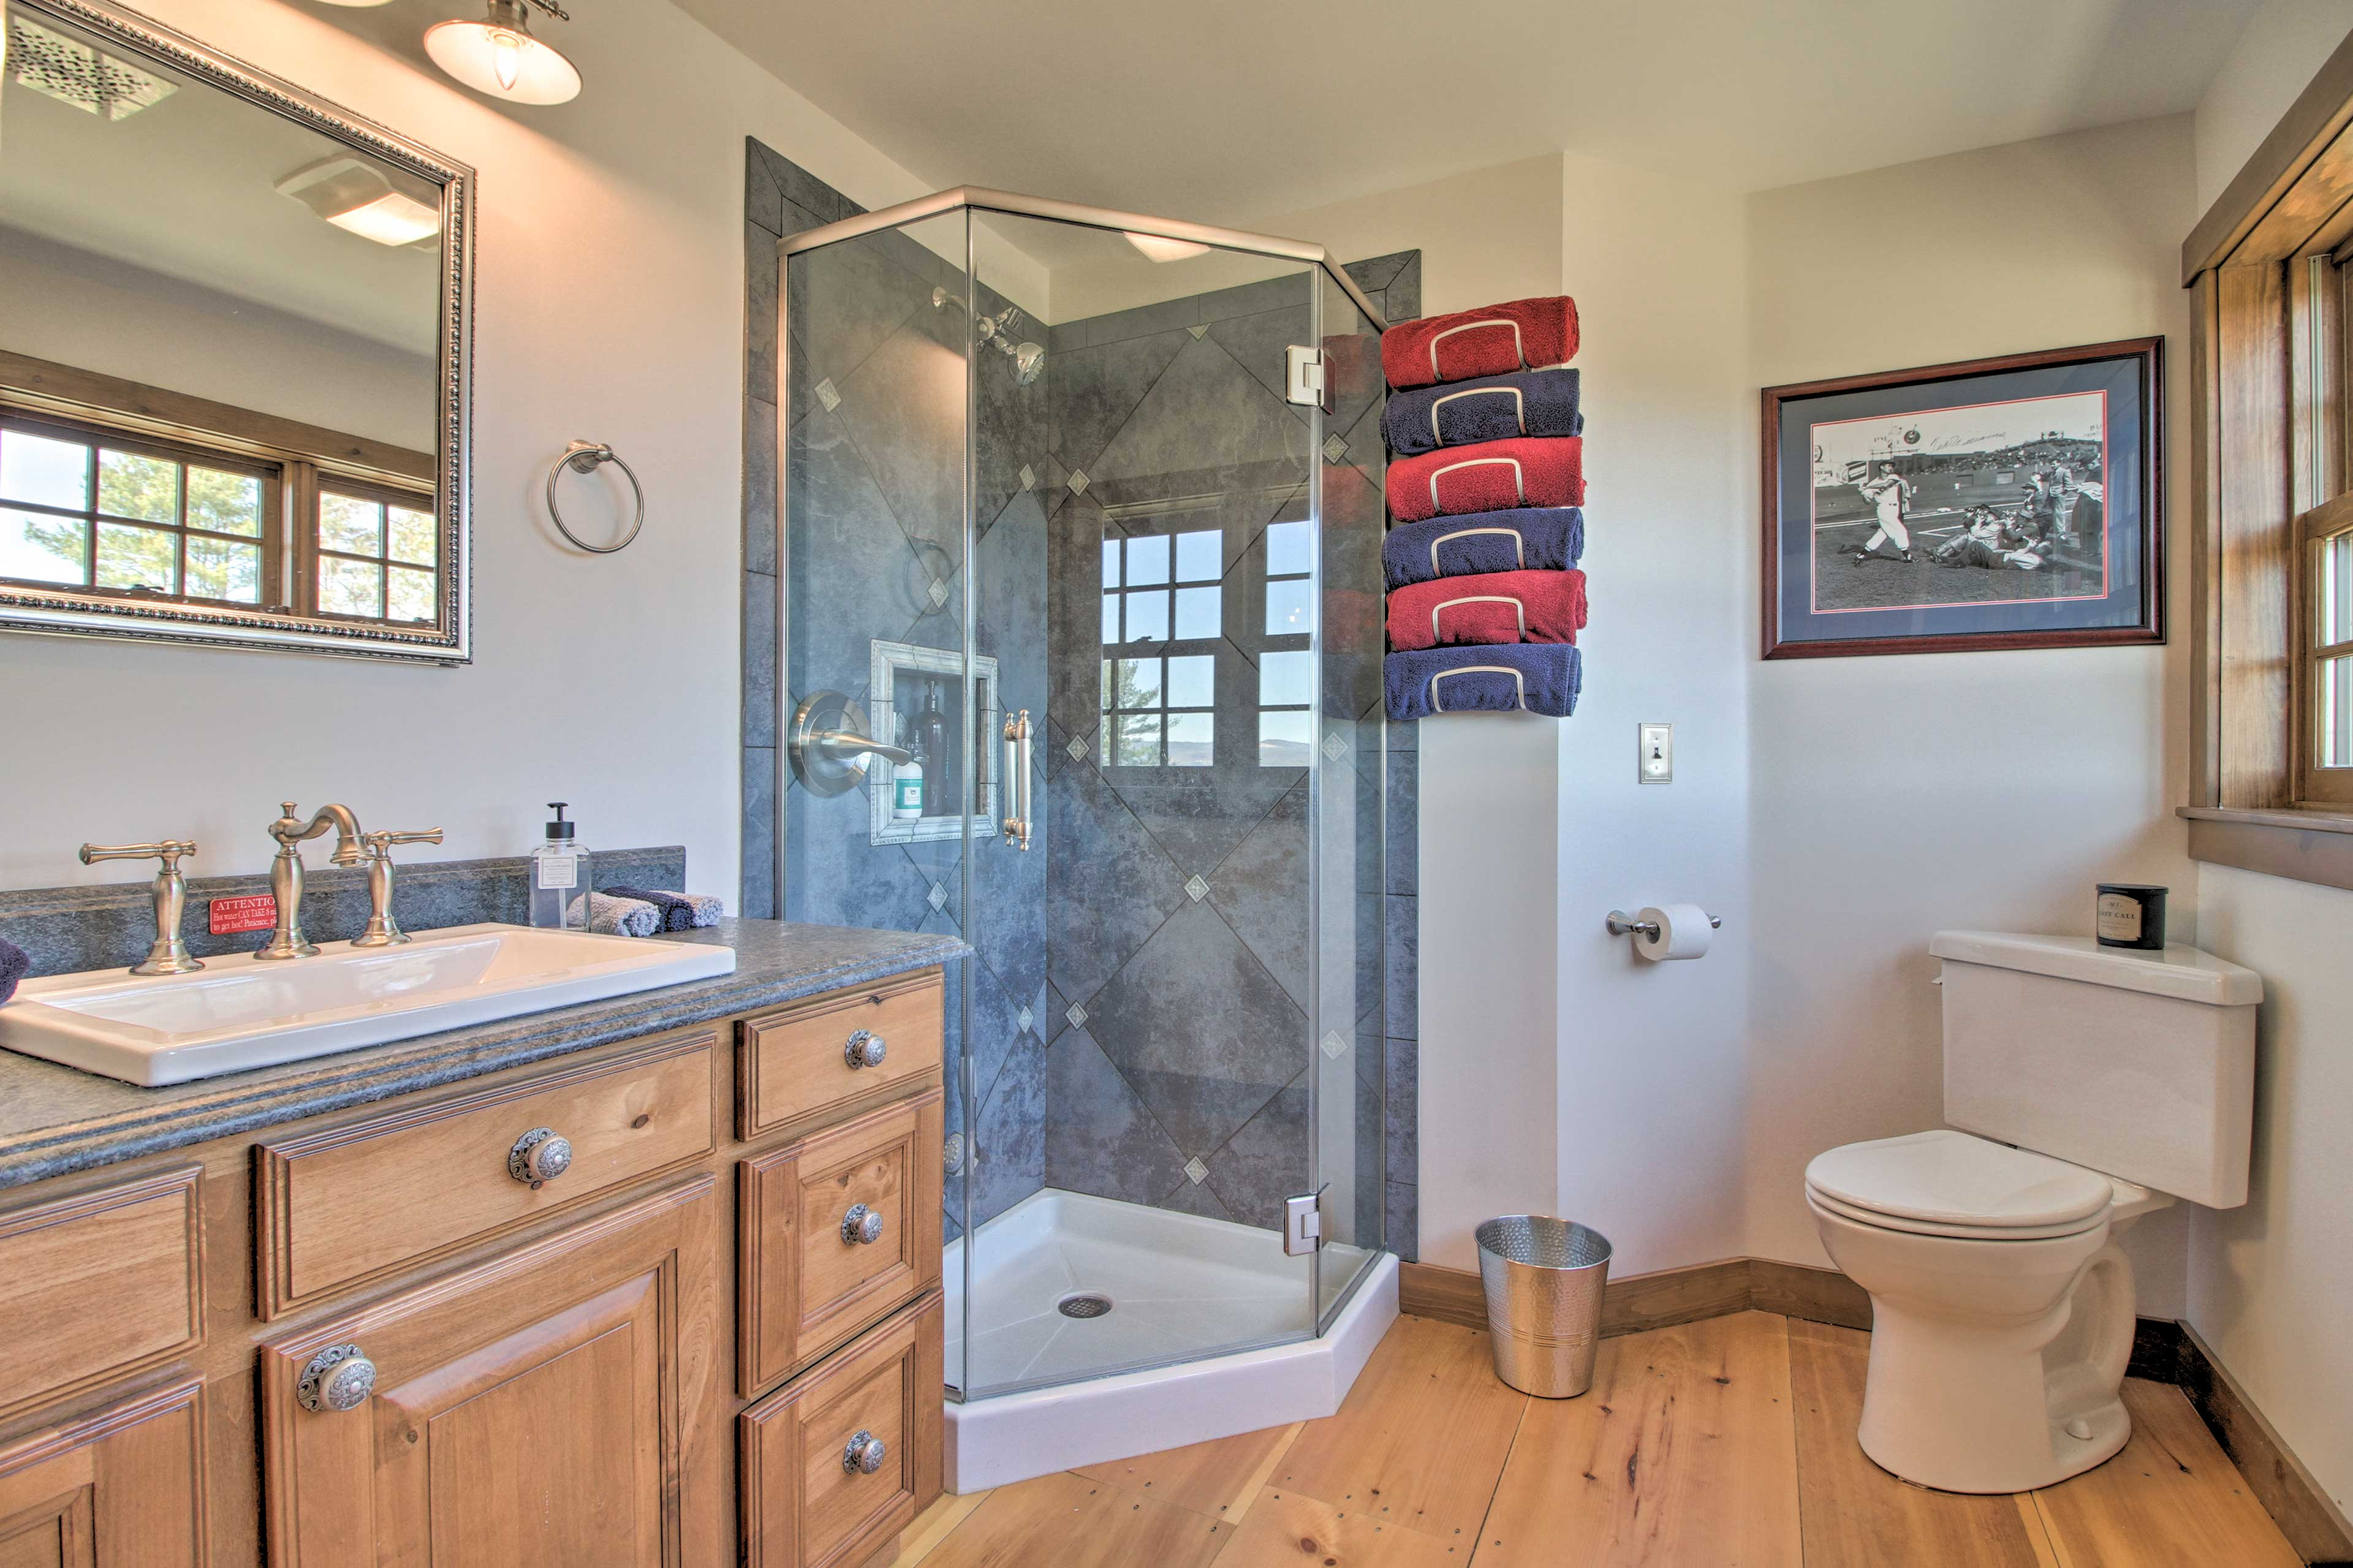 The third bathroom has a walk-in shower and complimentary towels.